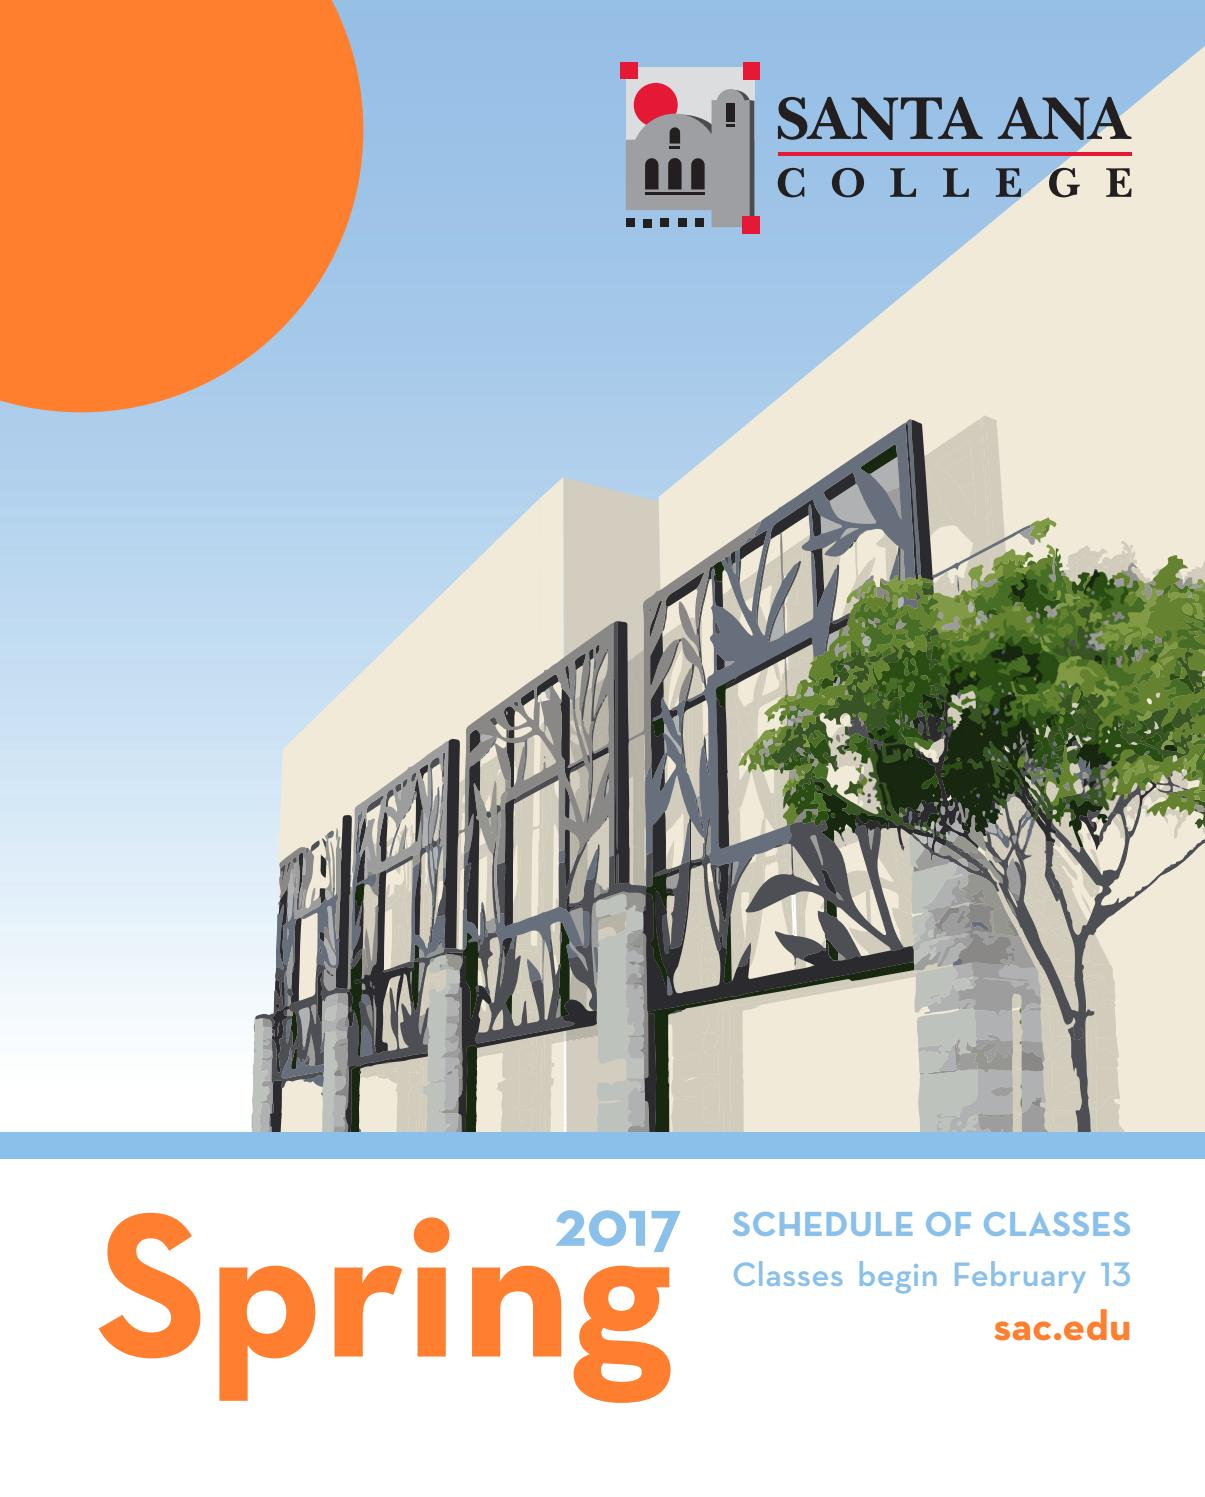 Santa ana college spring 2017 schedule of classes by santa ana santa ana college spring 2017 schedule of classes by santa ana college issuu aiddatafo Choice Image